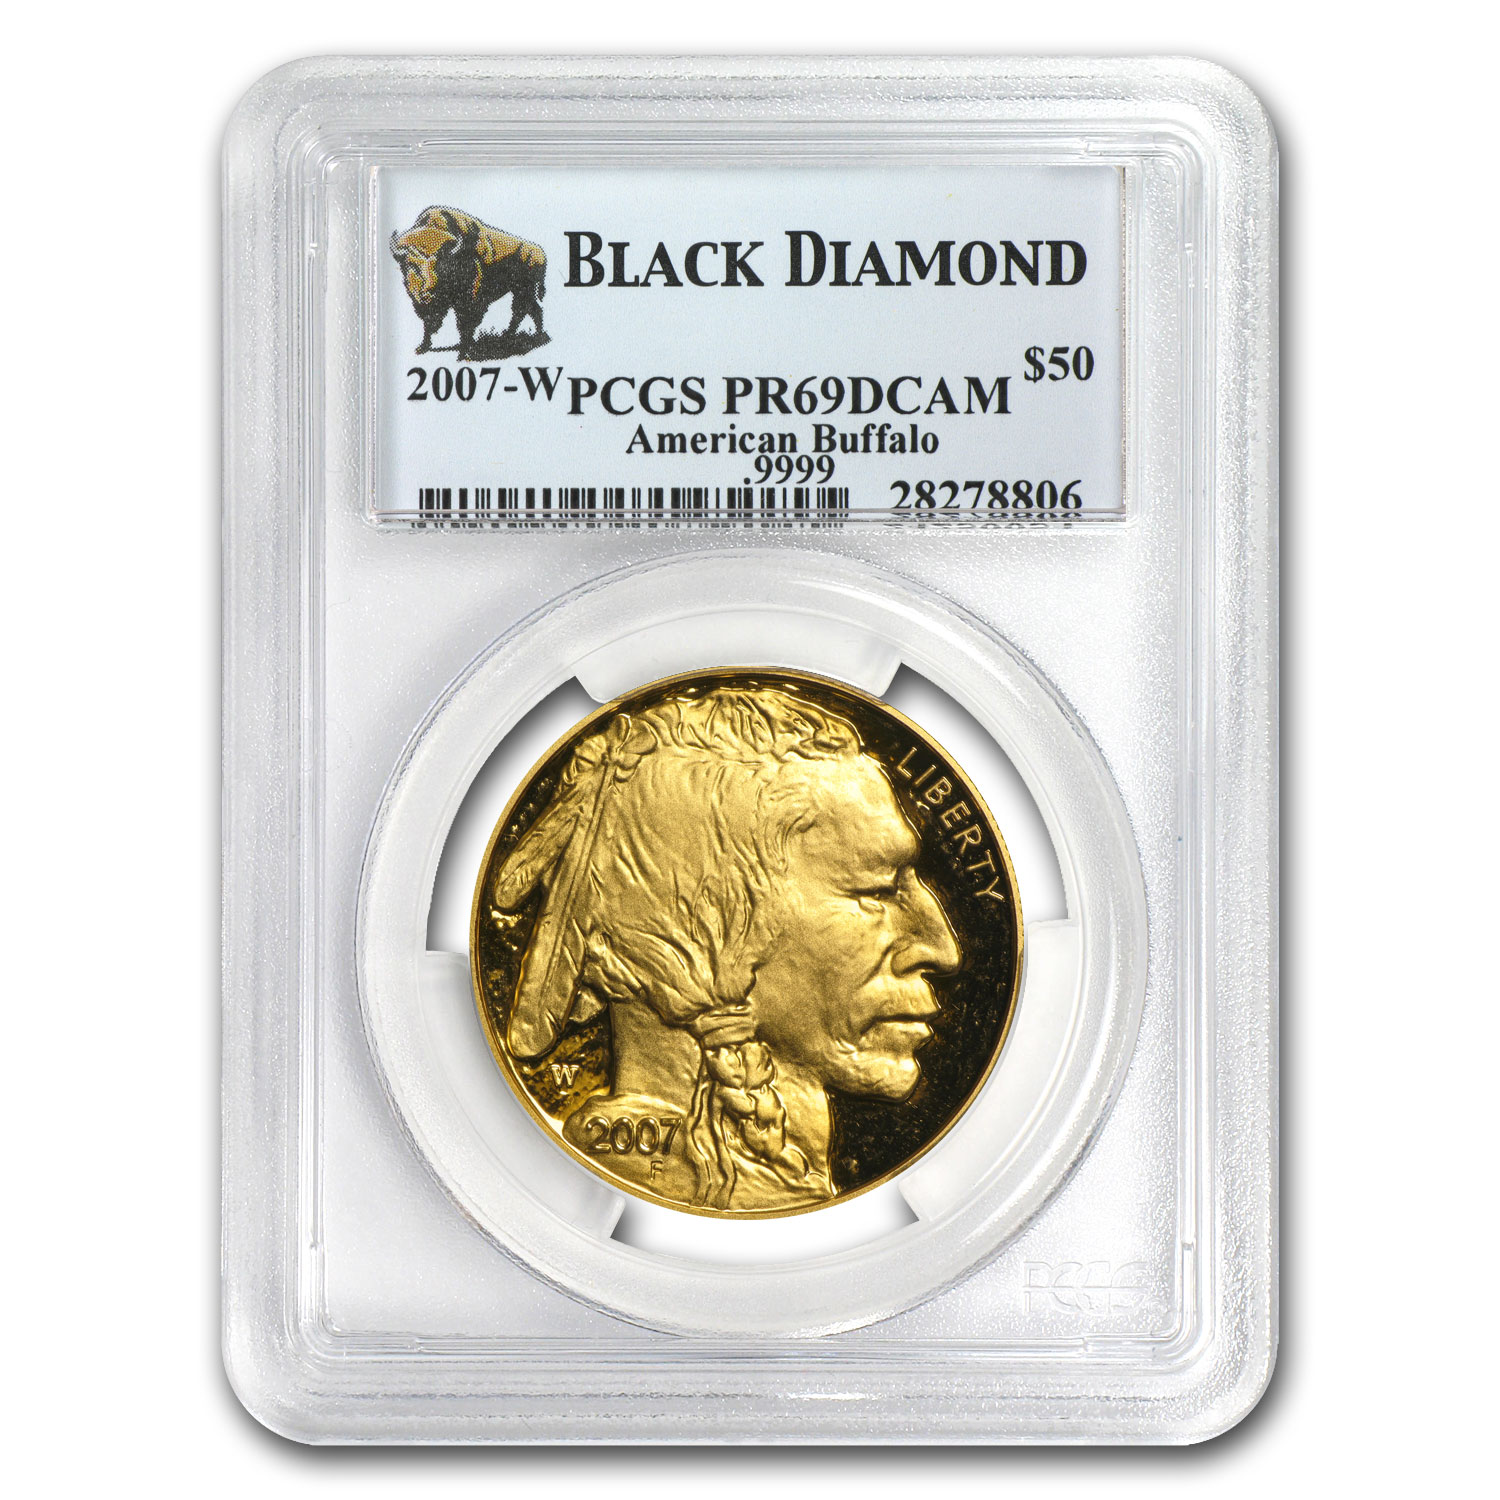 2007-W 1 oz Proof Gold Buffalo PR-69 PCGS (Black Diamond)